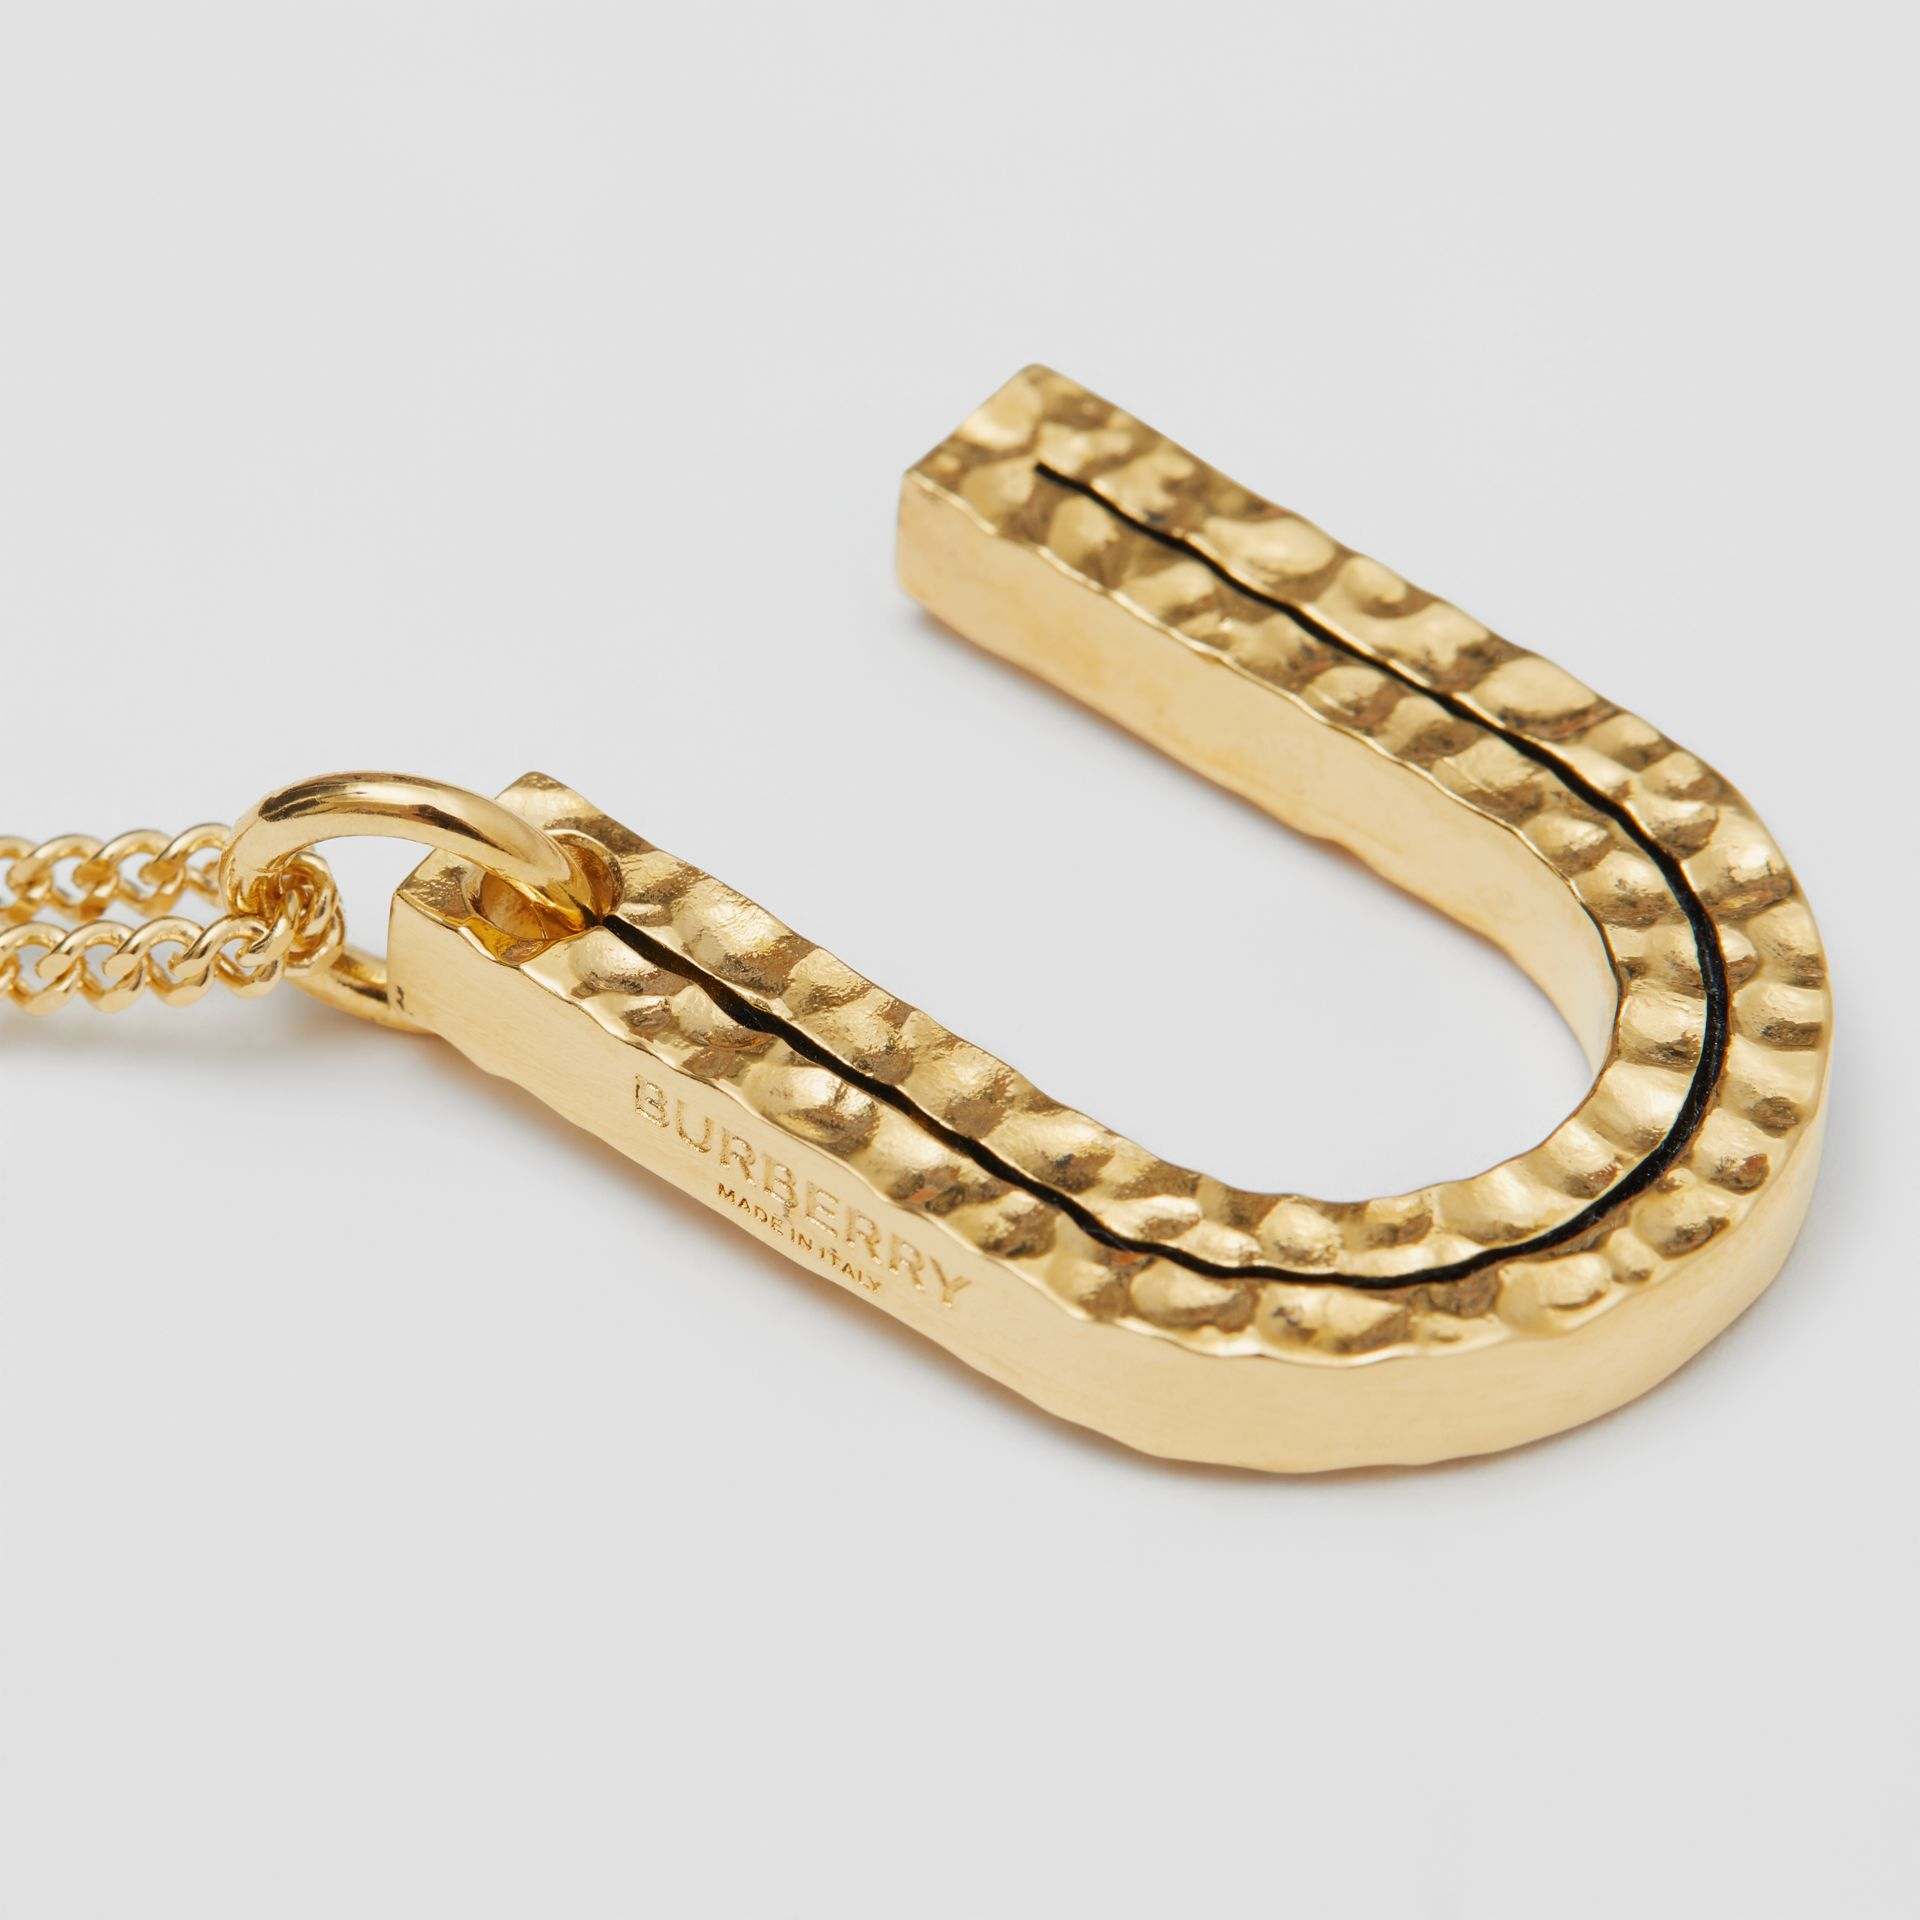 'U' Alphabet Charm Gold-plated Necklace in Light - Women | Burberry Australia - gallery image 1